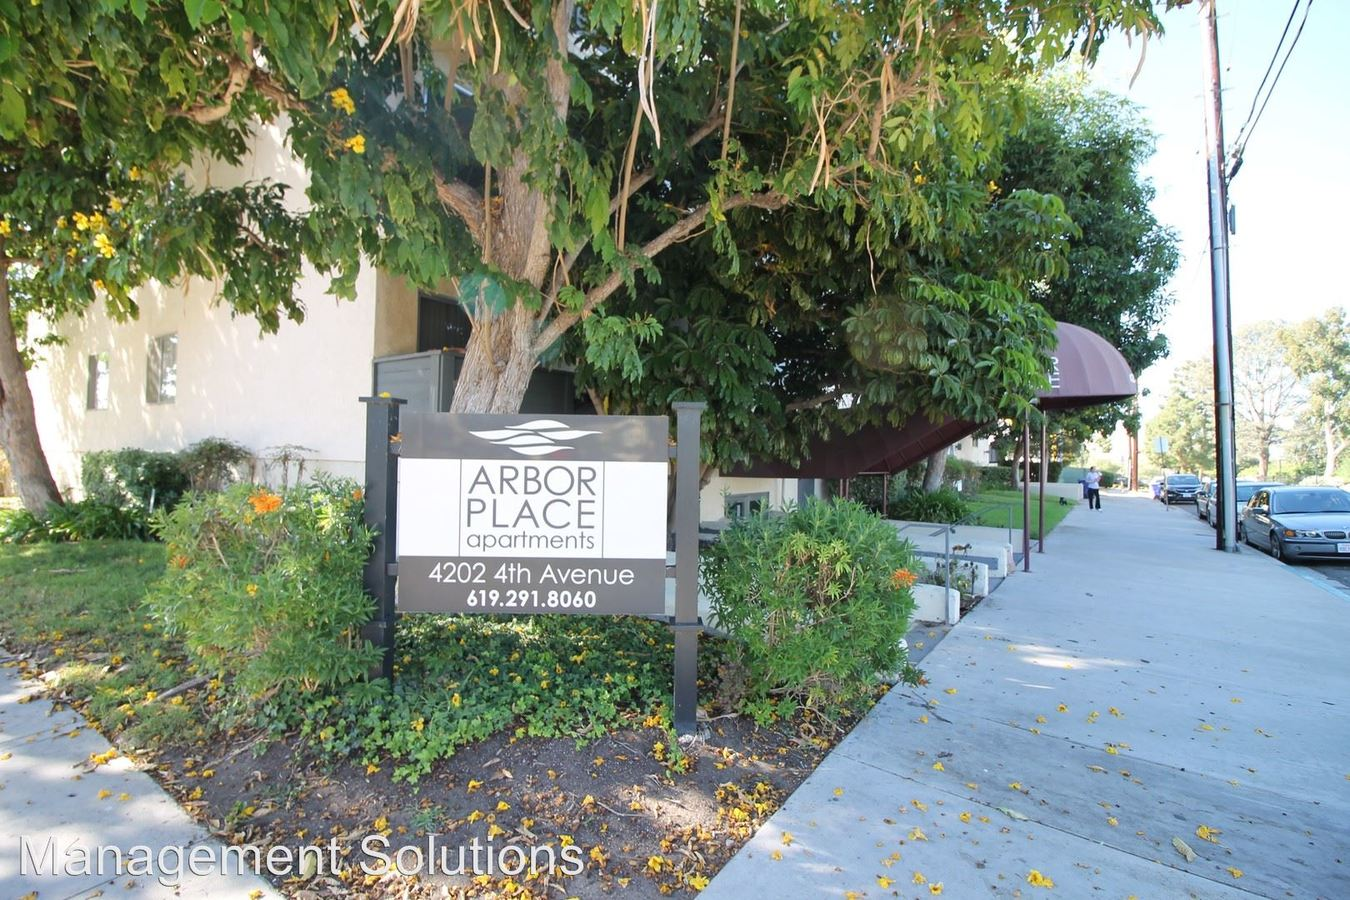 2 Bedrooms 2 Bathrooms Apartment for rent at 4202 4th Avenue in San Diego, CA